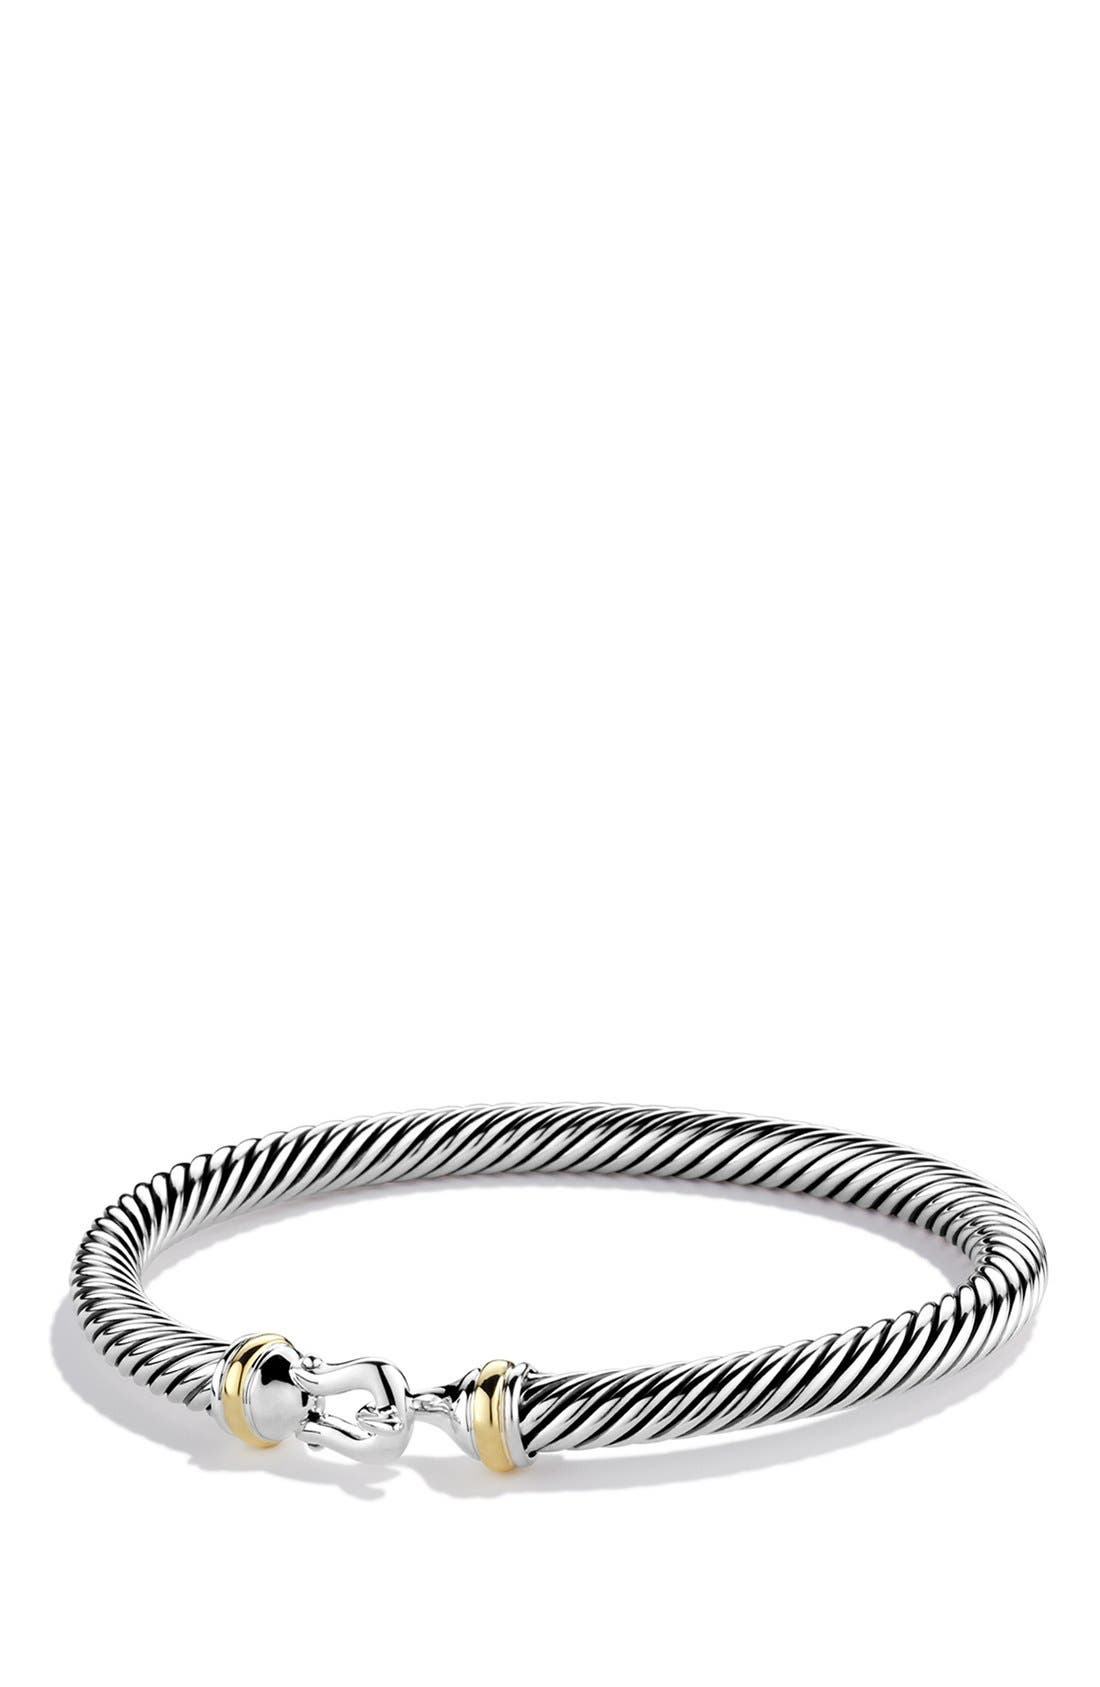 Cable Classic Buckle Bracelet with 18K Gold, 5mm,                         Main,                         color, Two Tone